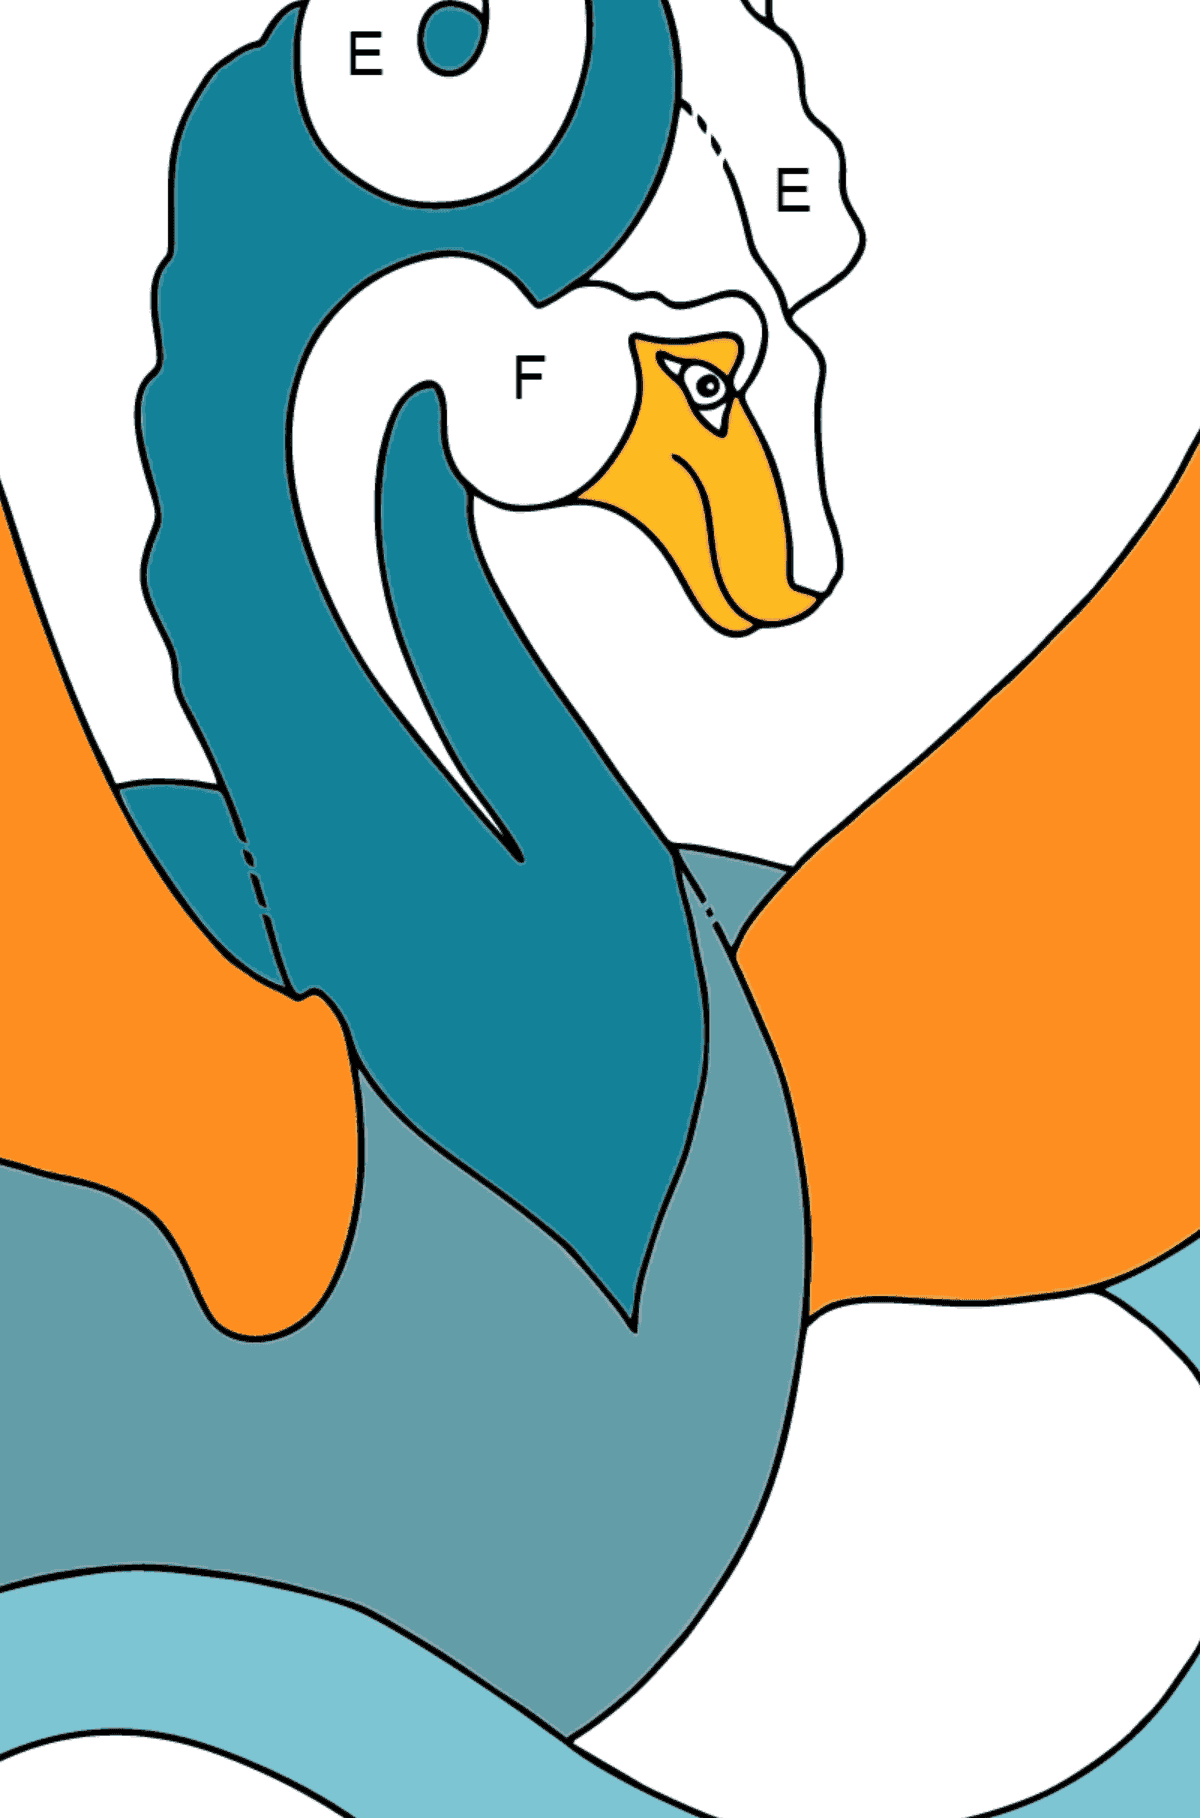 Coloring Page - A Dragon with Small Wings - Coloring by Letters for Kids